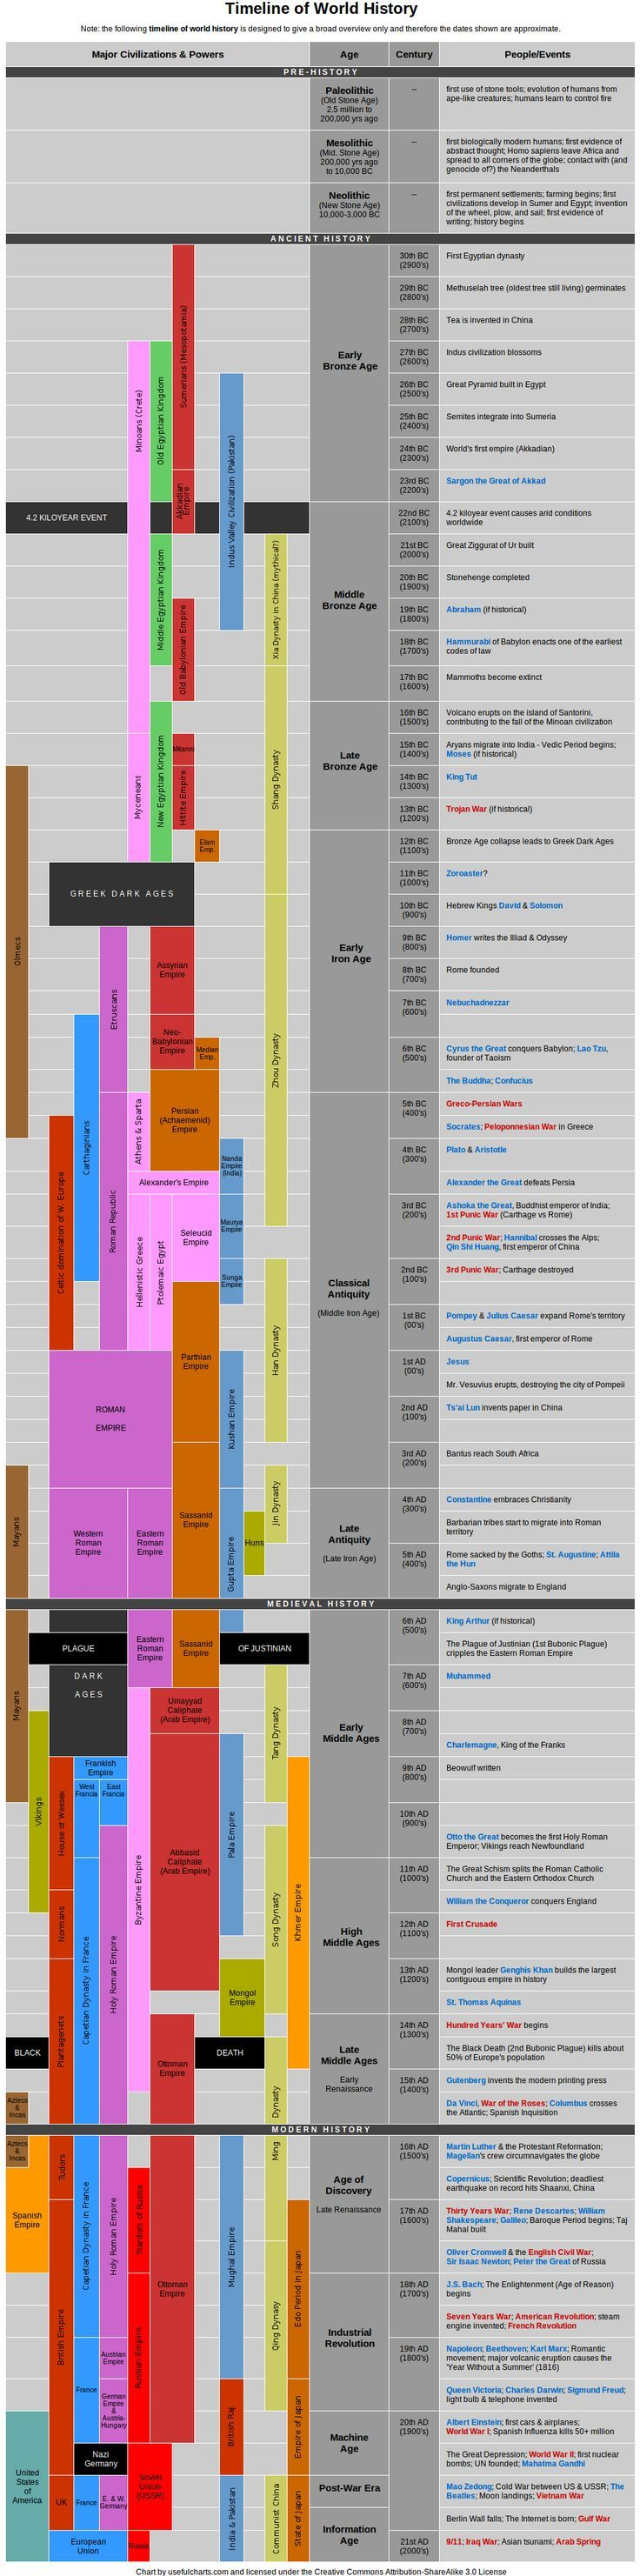 Timeline of World #History - Major Civilizations & Powers